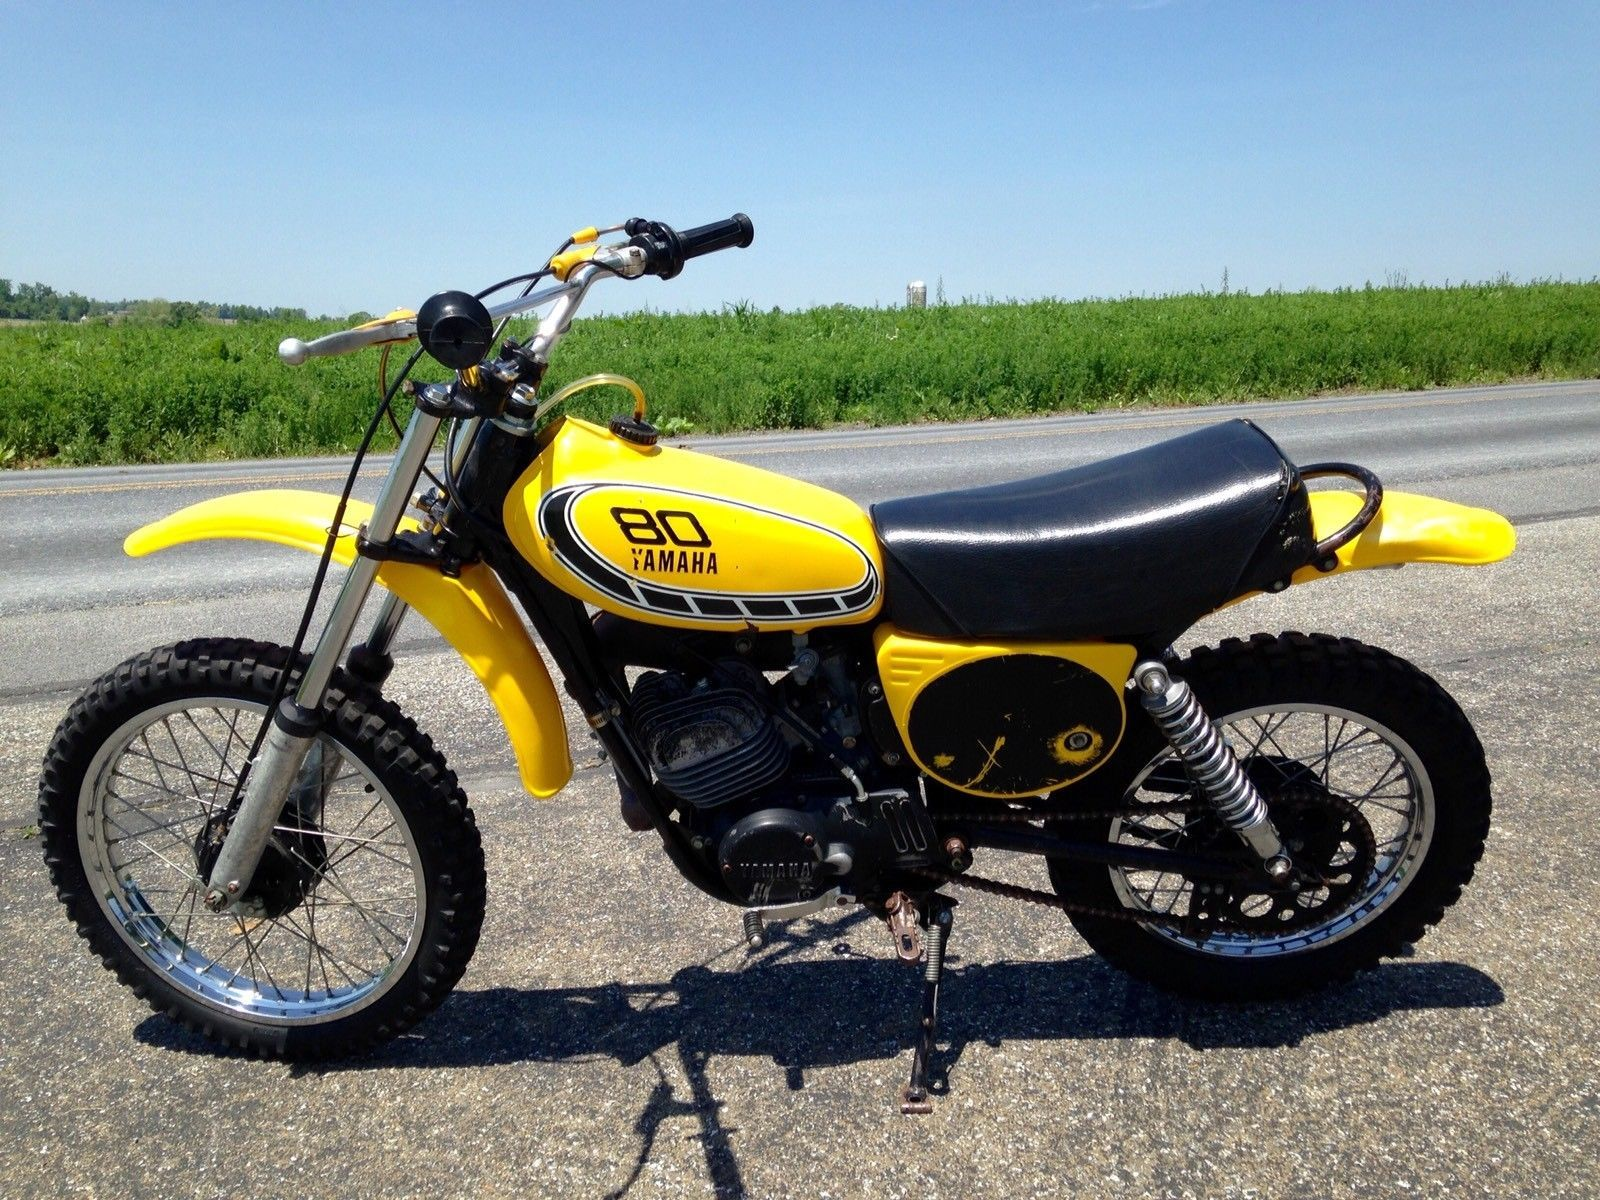 1976 Yamaha Yz80 Motorcycle With Title Mini Bike Ebay Yamaha